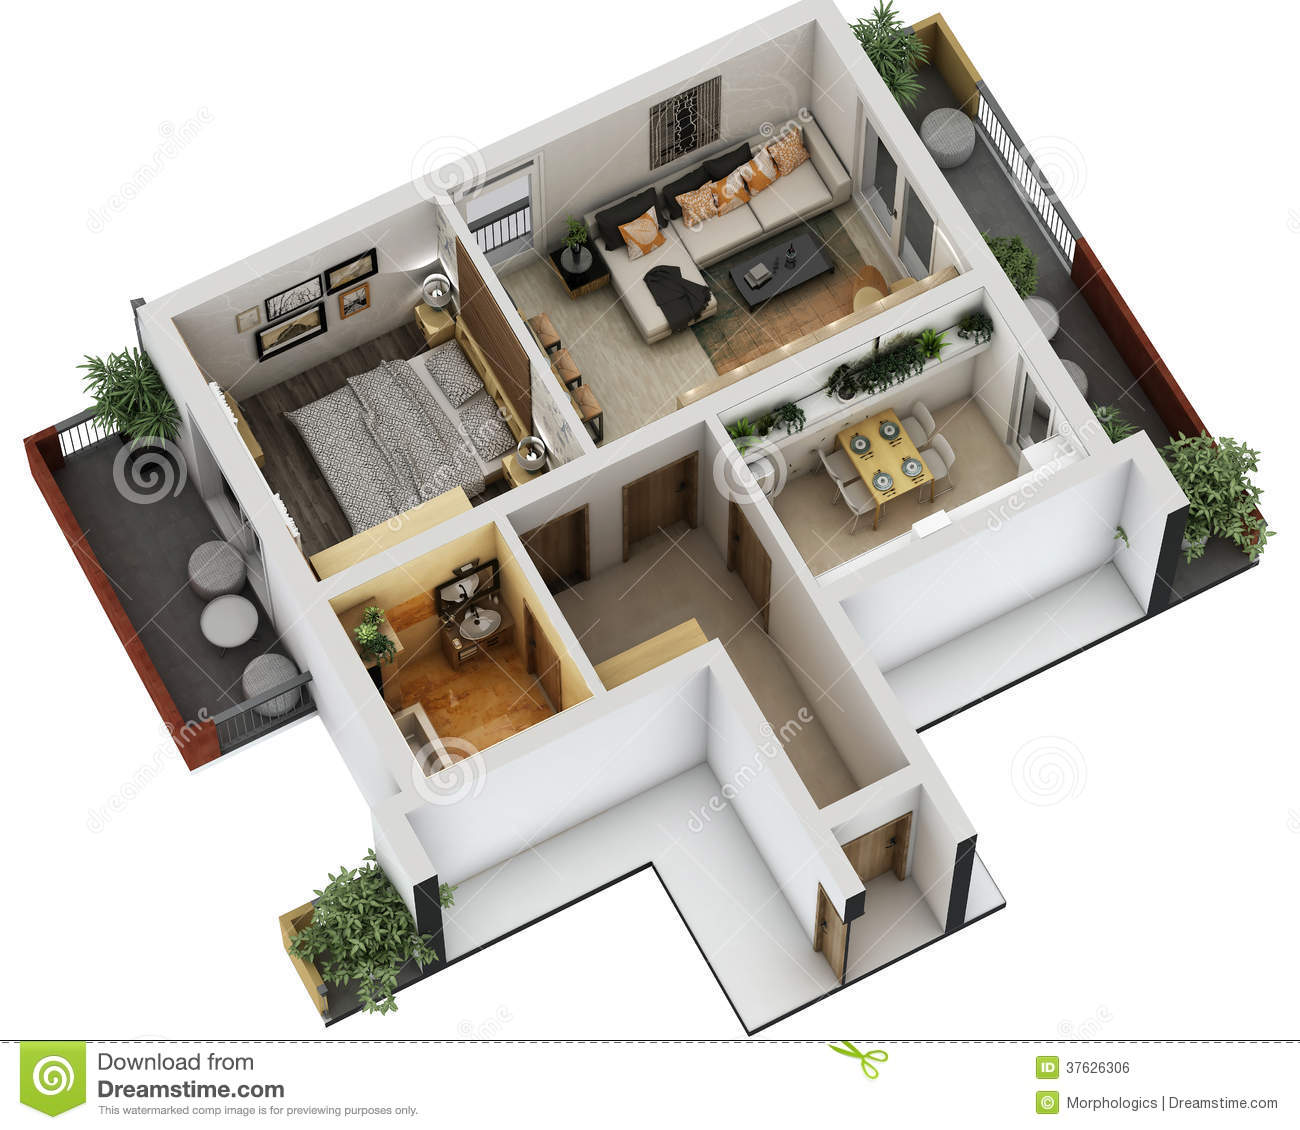 3d floor plan royalty free stock image image 37626306 for Appartement design plan